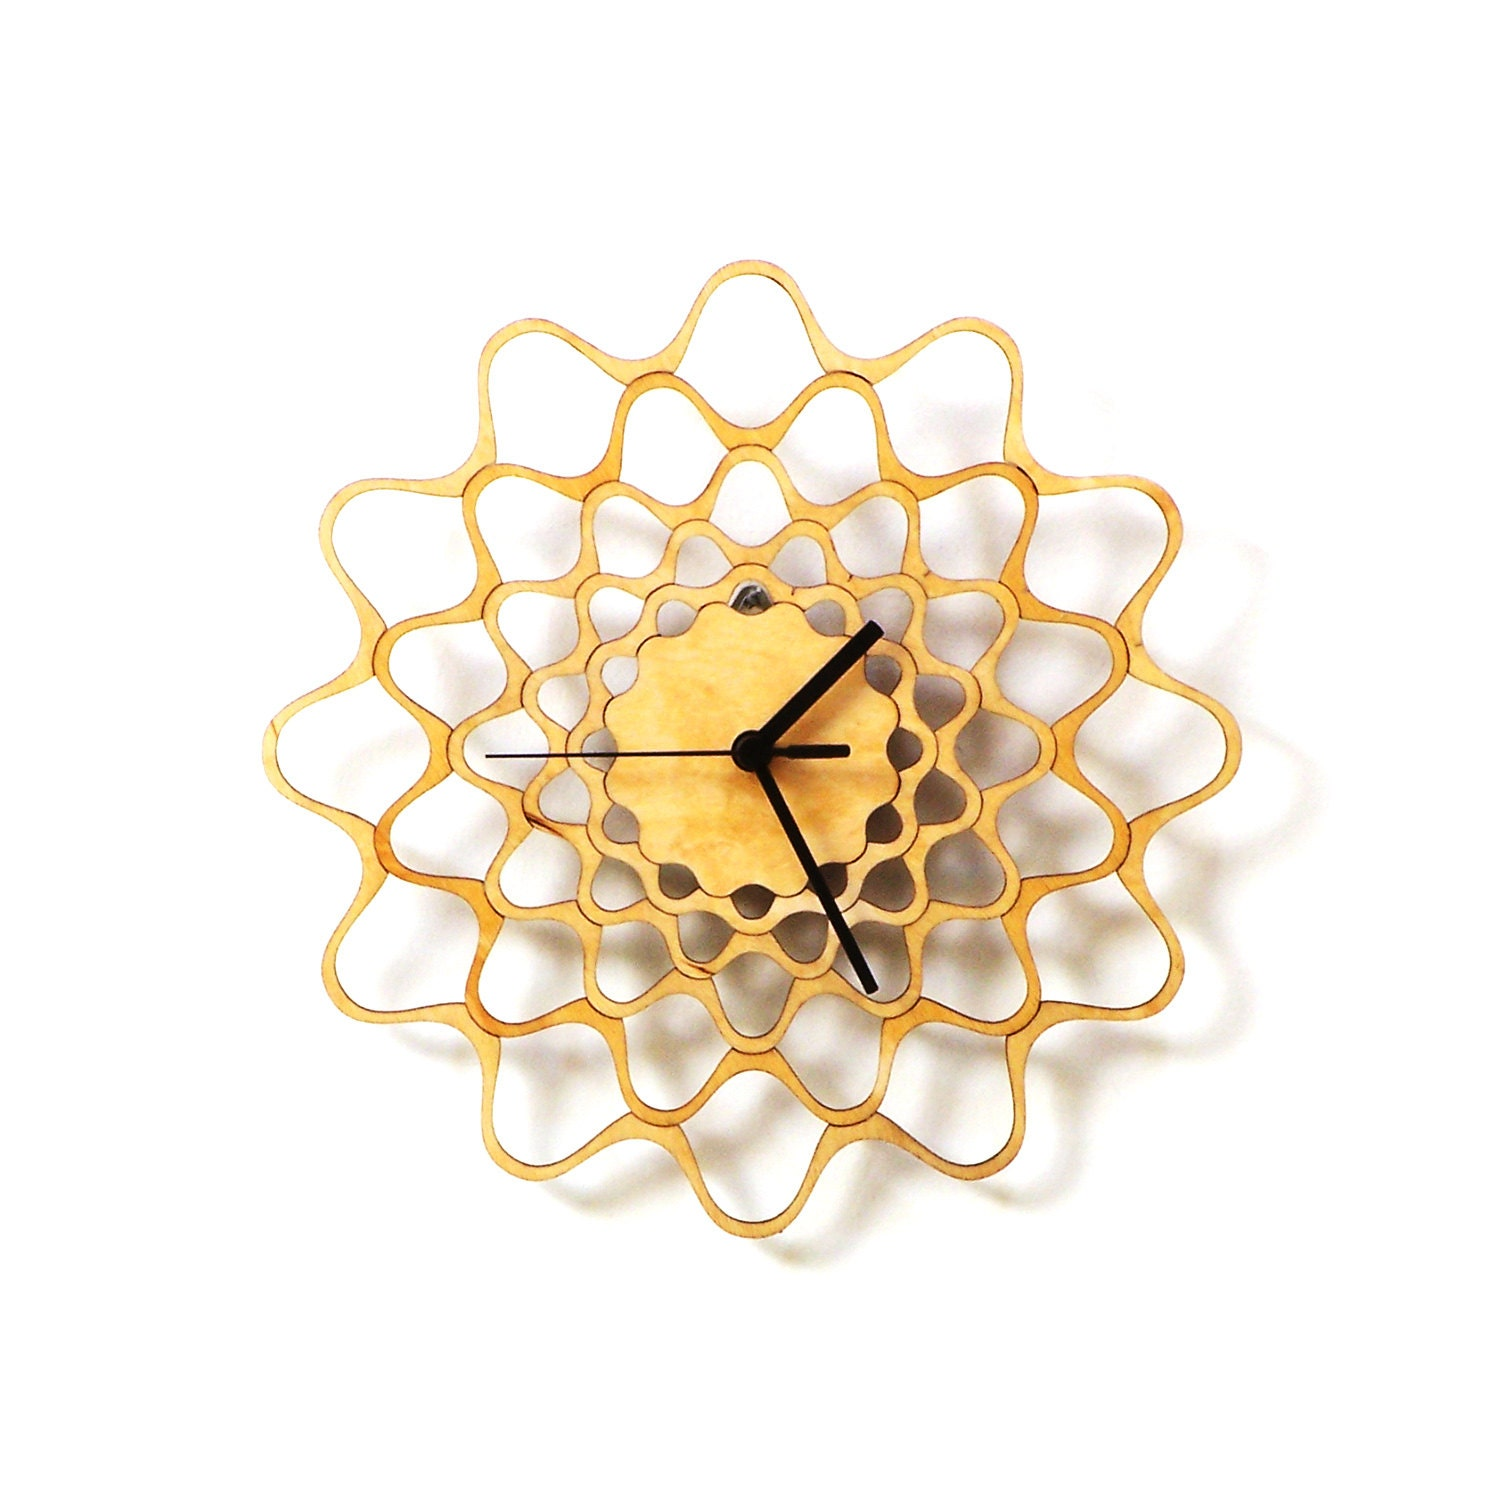 Embroidery contemporary modern wall clock made of wood